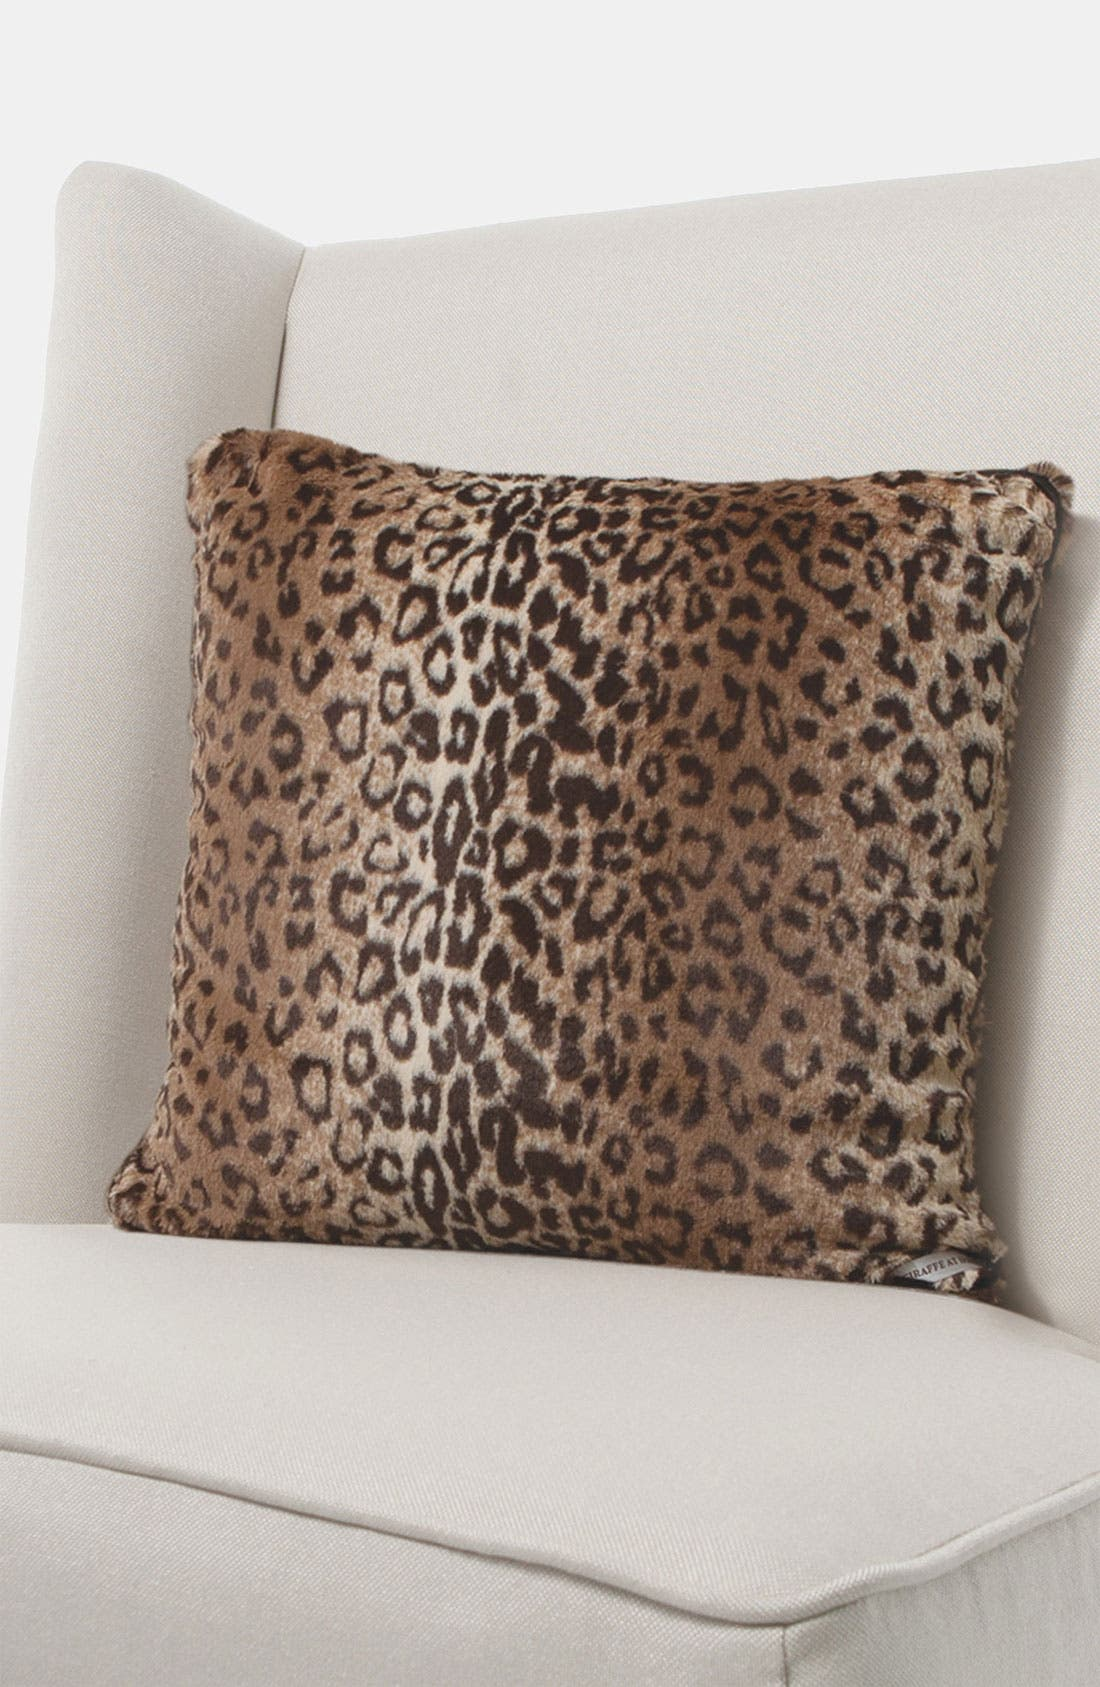 Giraffe at Home 'Luxe Leopard' Throw Pillow (Online Only)